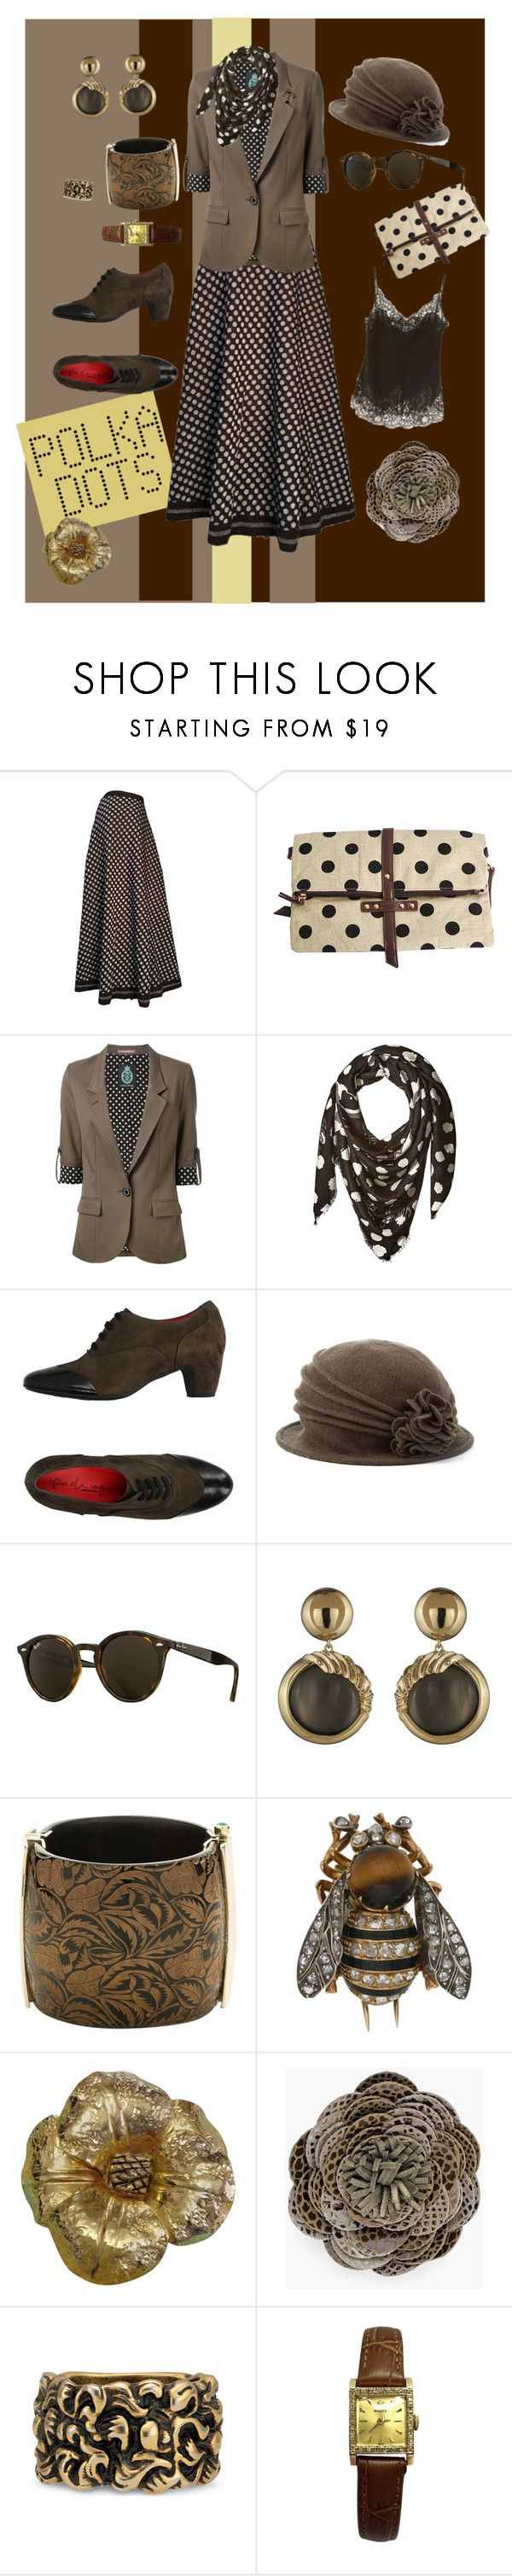 """""""Polka Dots - I"""" by mary-kay-de-jesus ❤ liked on Polyvore featuring Lanvin, Guild Prime, Armani Jeans, PAS DE ROUGE, Scala, Ray-Ban, Alexis Bittar, Yves Saint Laurent, Chico's and Gucci"""